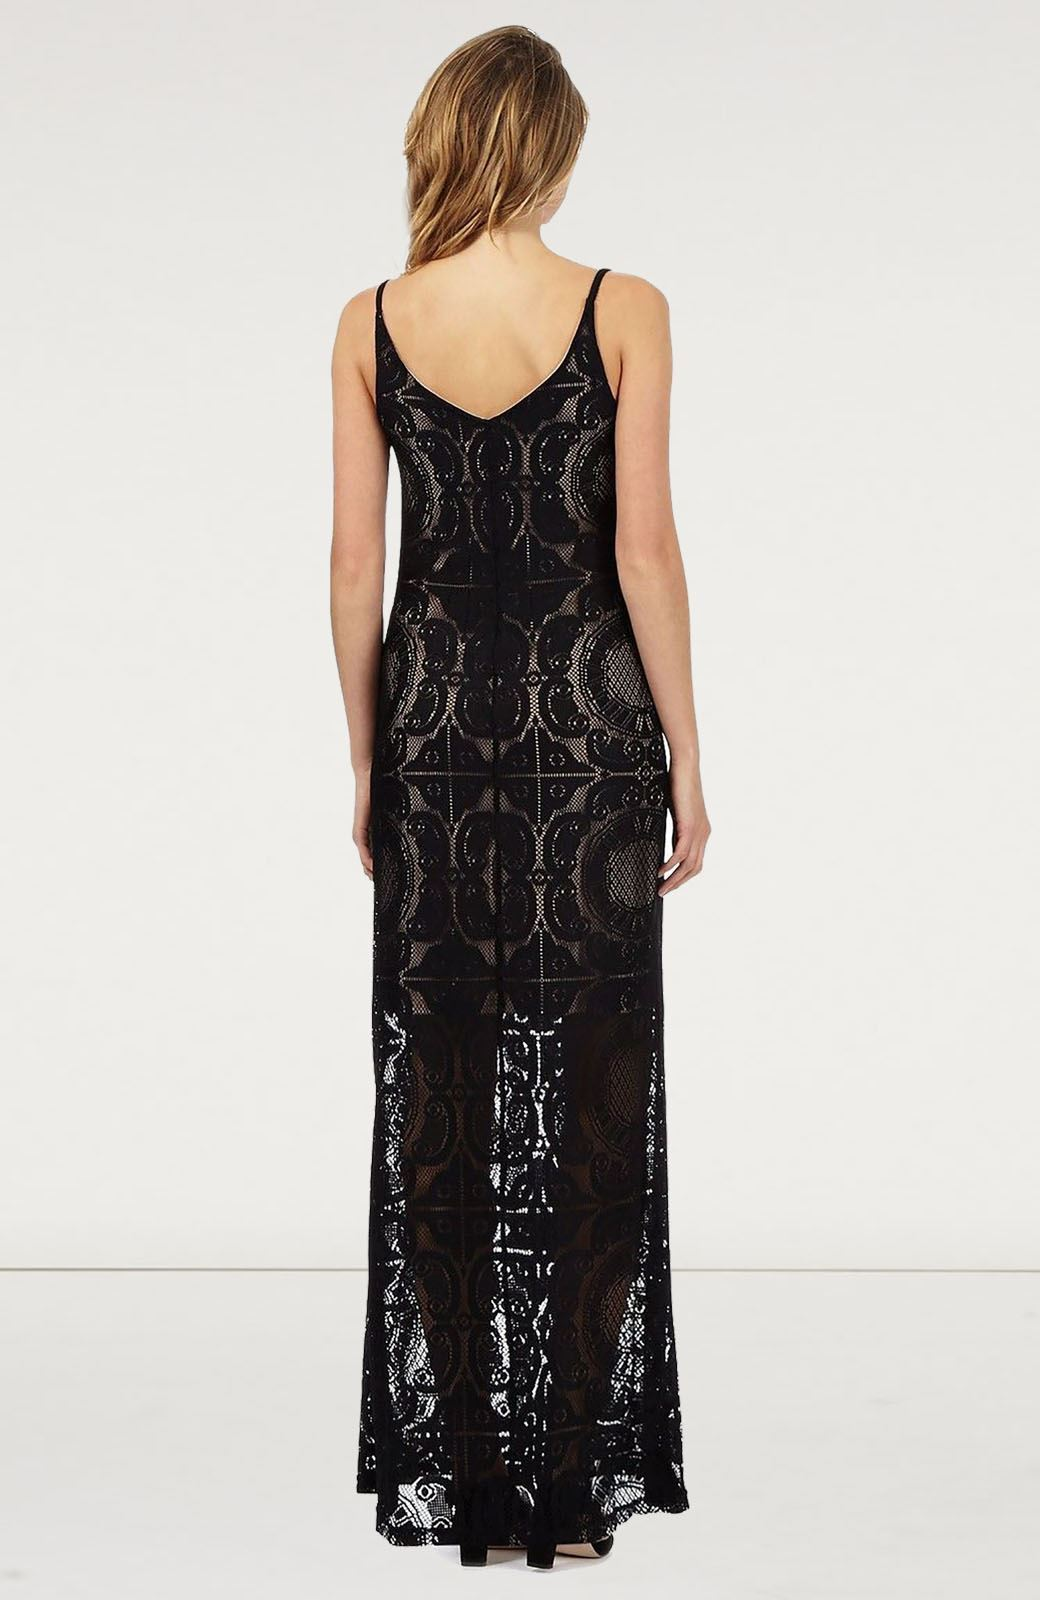 JULIEN-MACDONALD-Black-Lace-Maxi-Party-Dress-Long-Sleevless-RRP-69 thumbnail 3